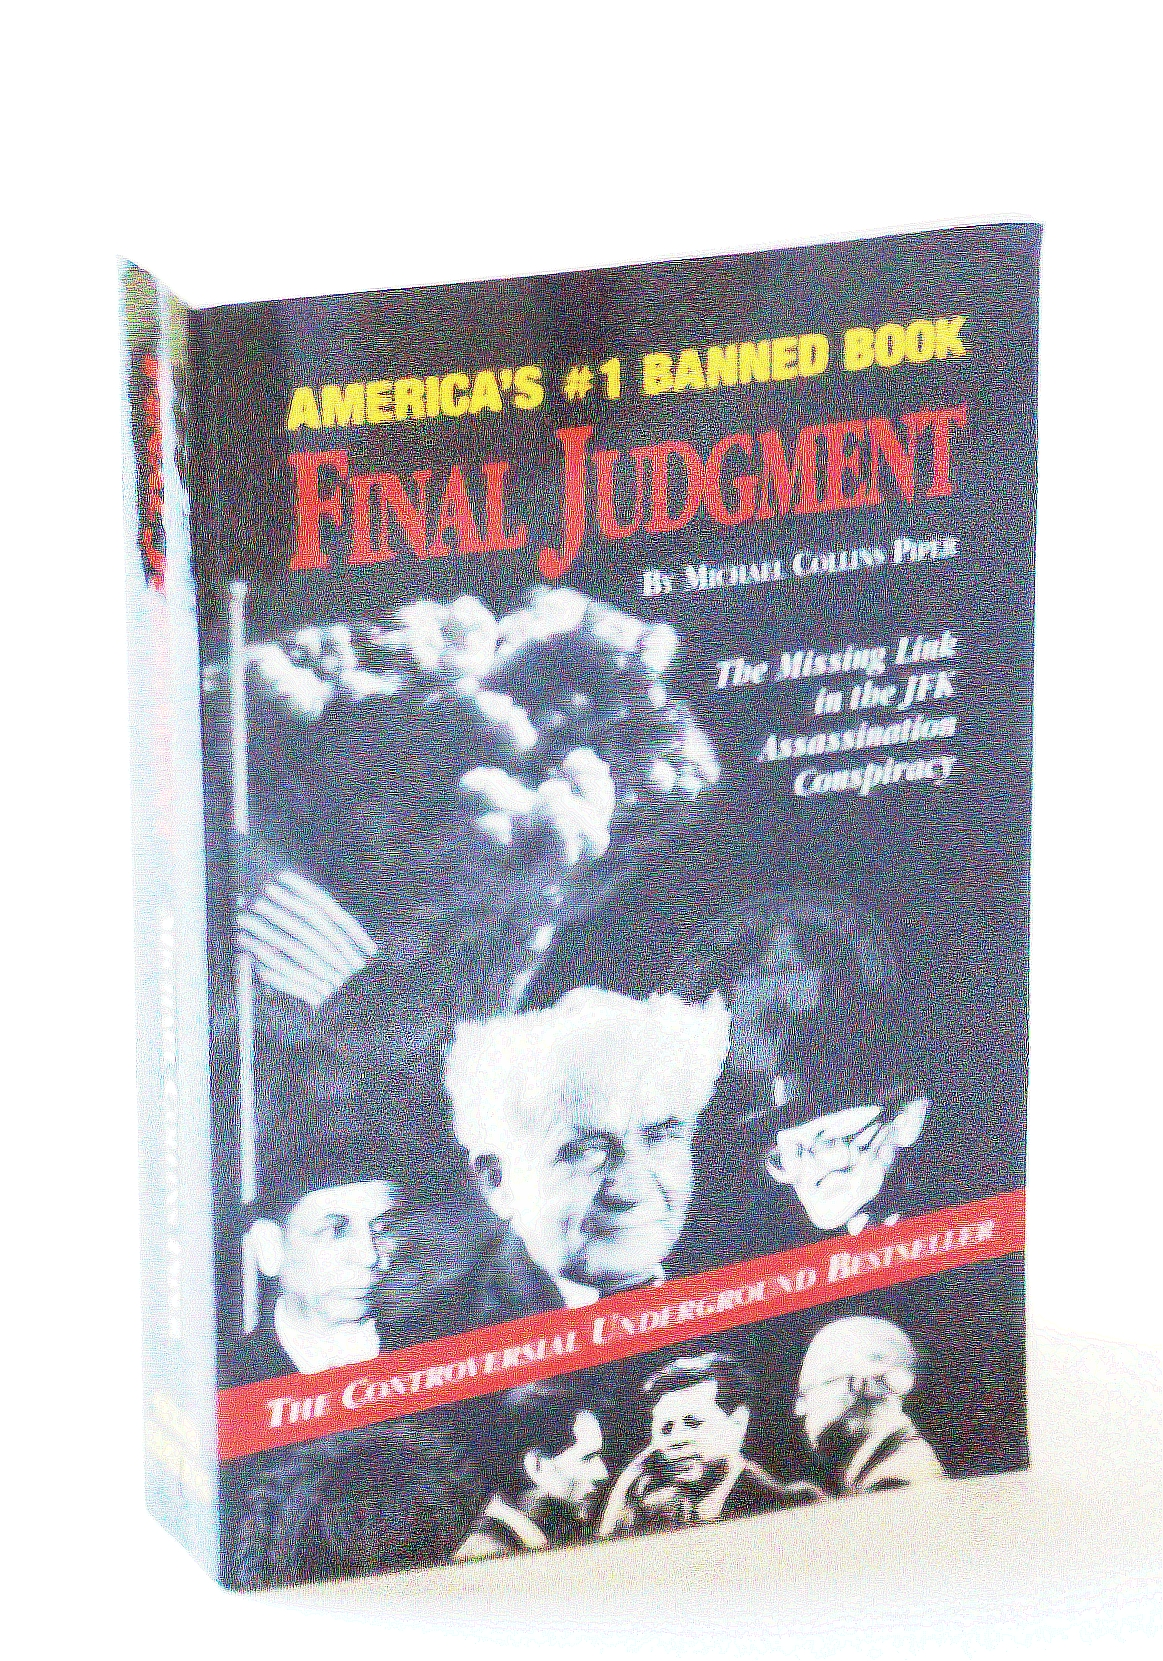 Image for Final Judgment: The Missing Link in the JFK Assassination Conspiracy